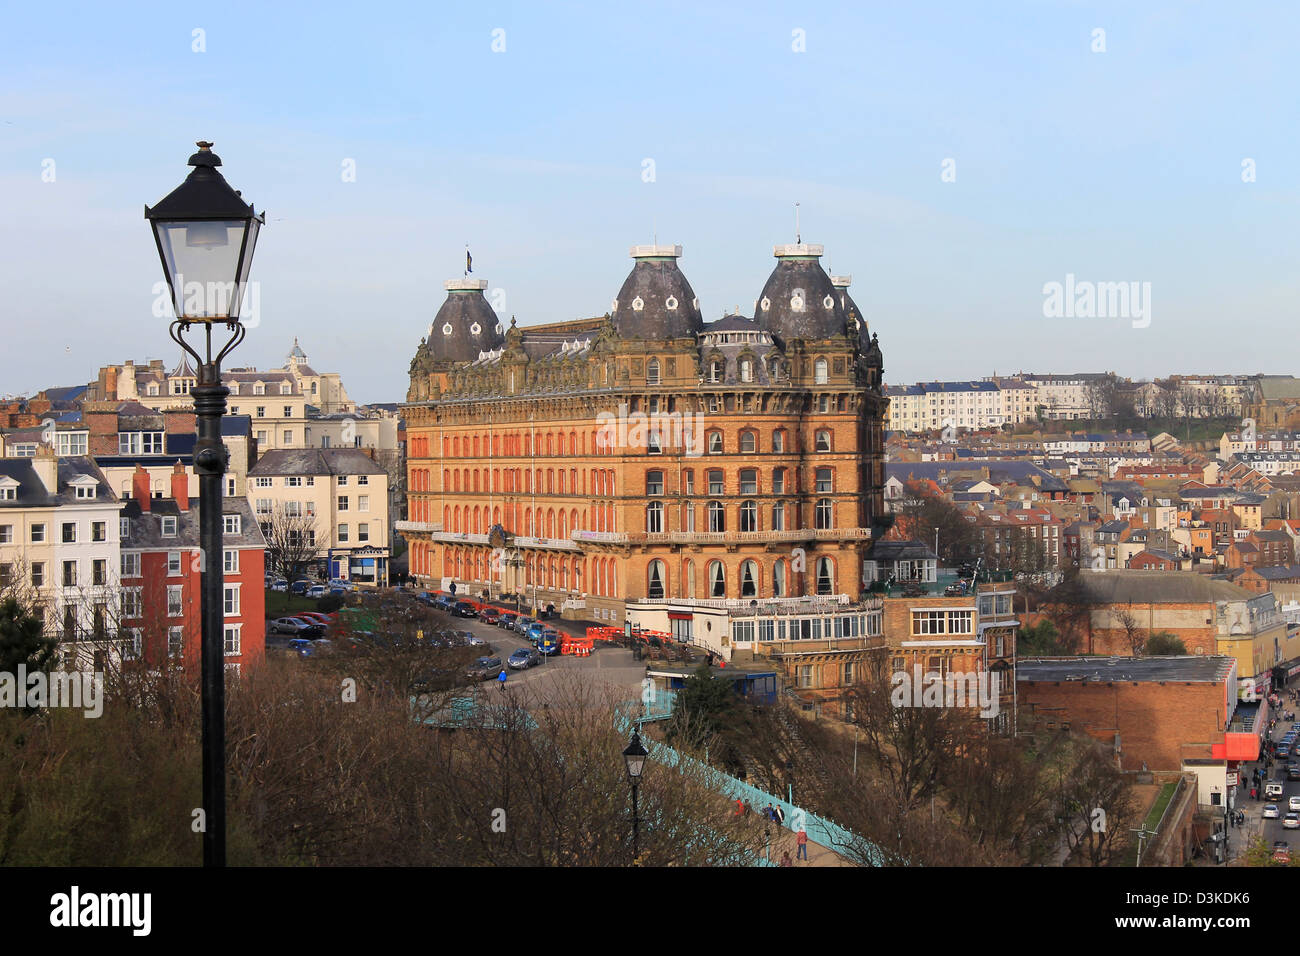 Old town and Grand Hotel viewed from South Cliff Esplanade, Scarborough, North Yorkshire, England. - Stock Image